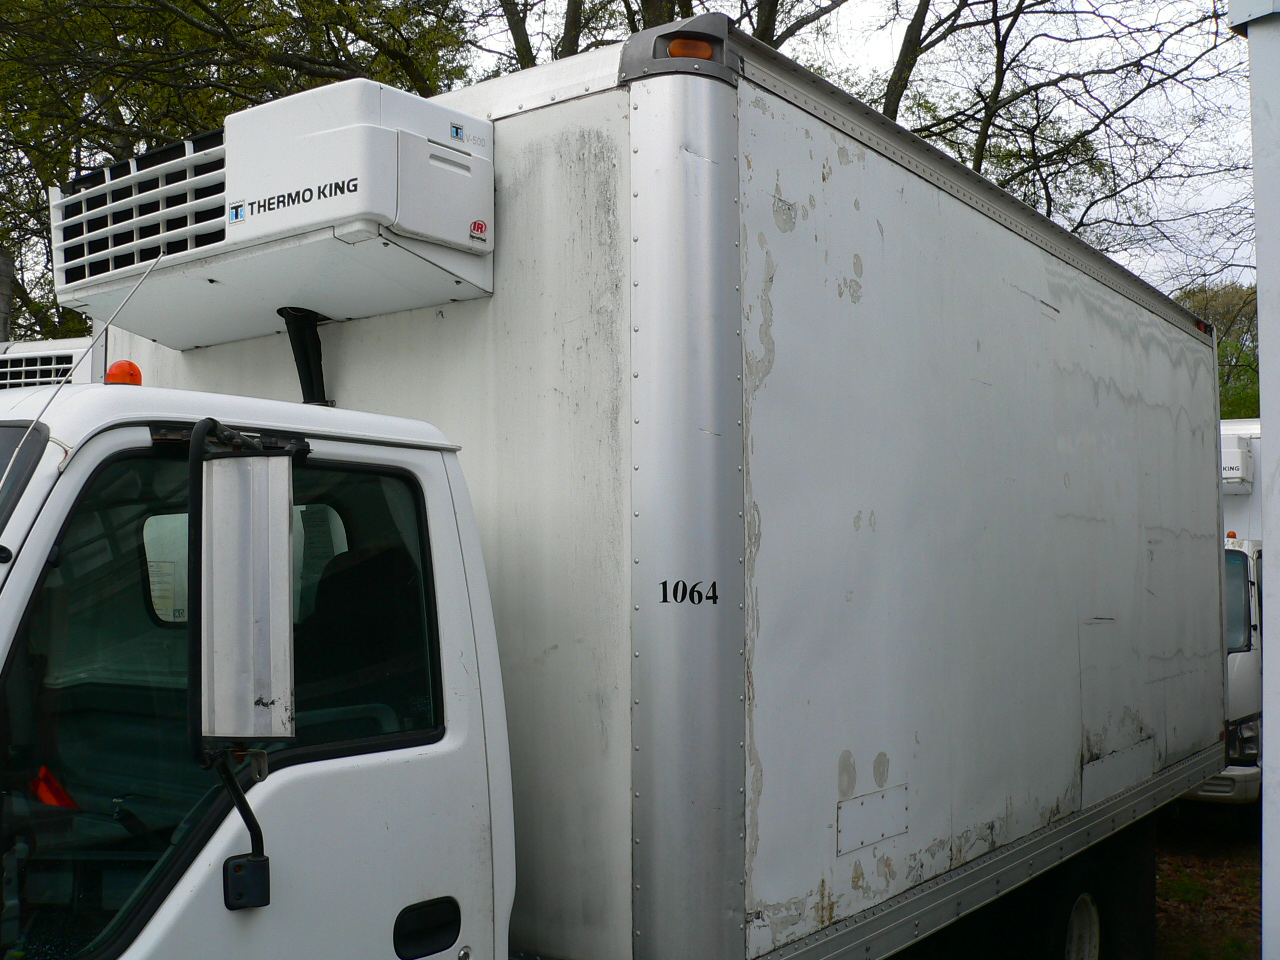 Used Refrigerated Truck body for sale, Kidron Refrigerated